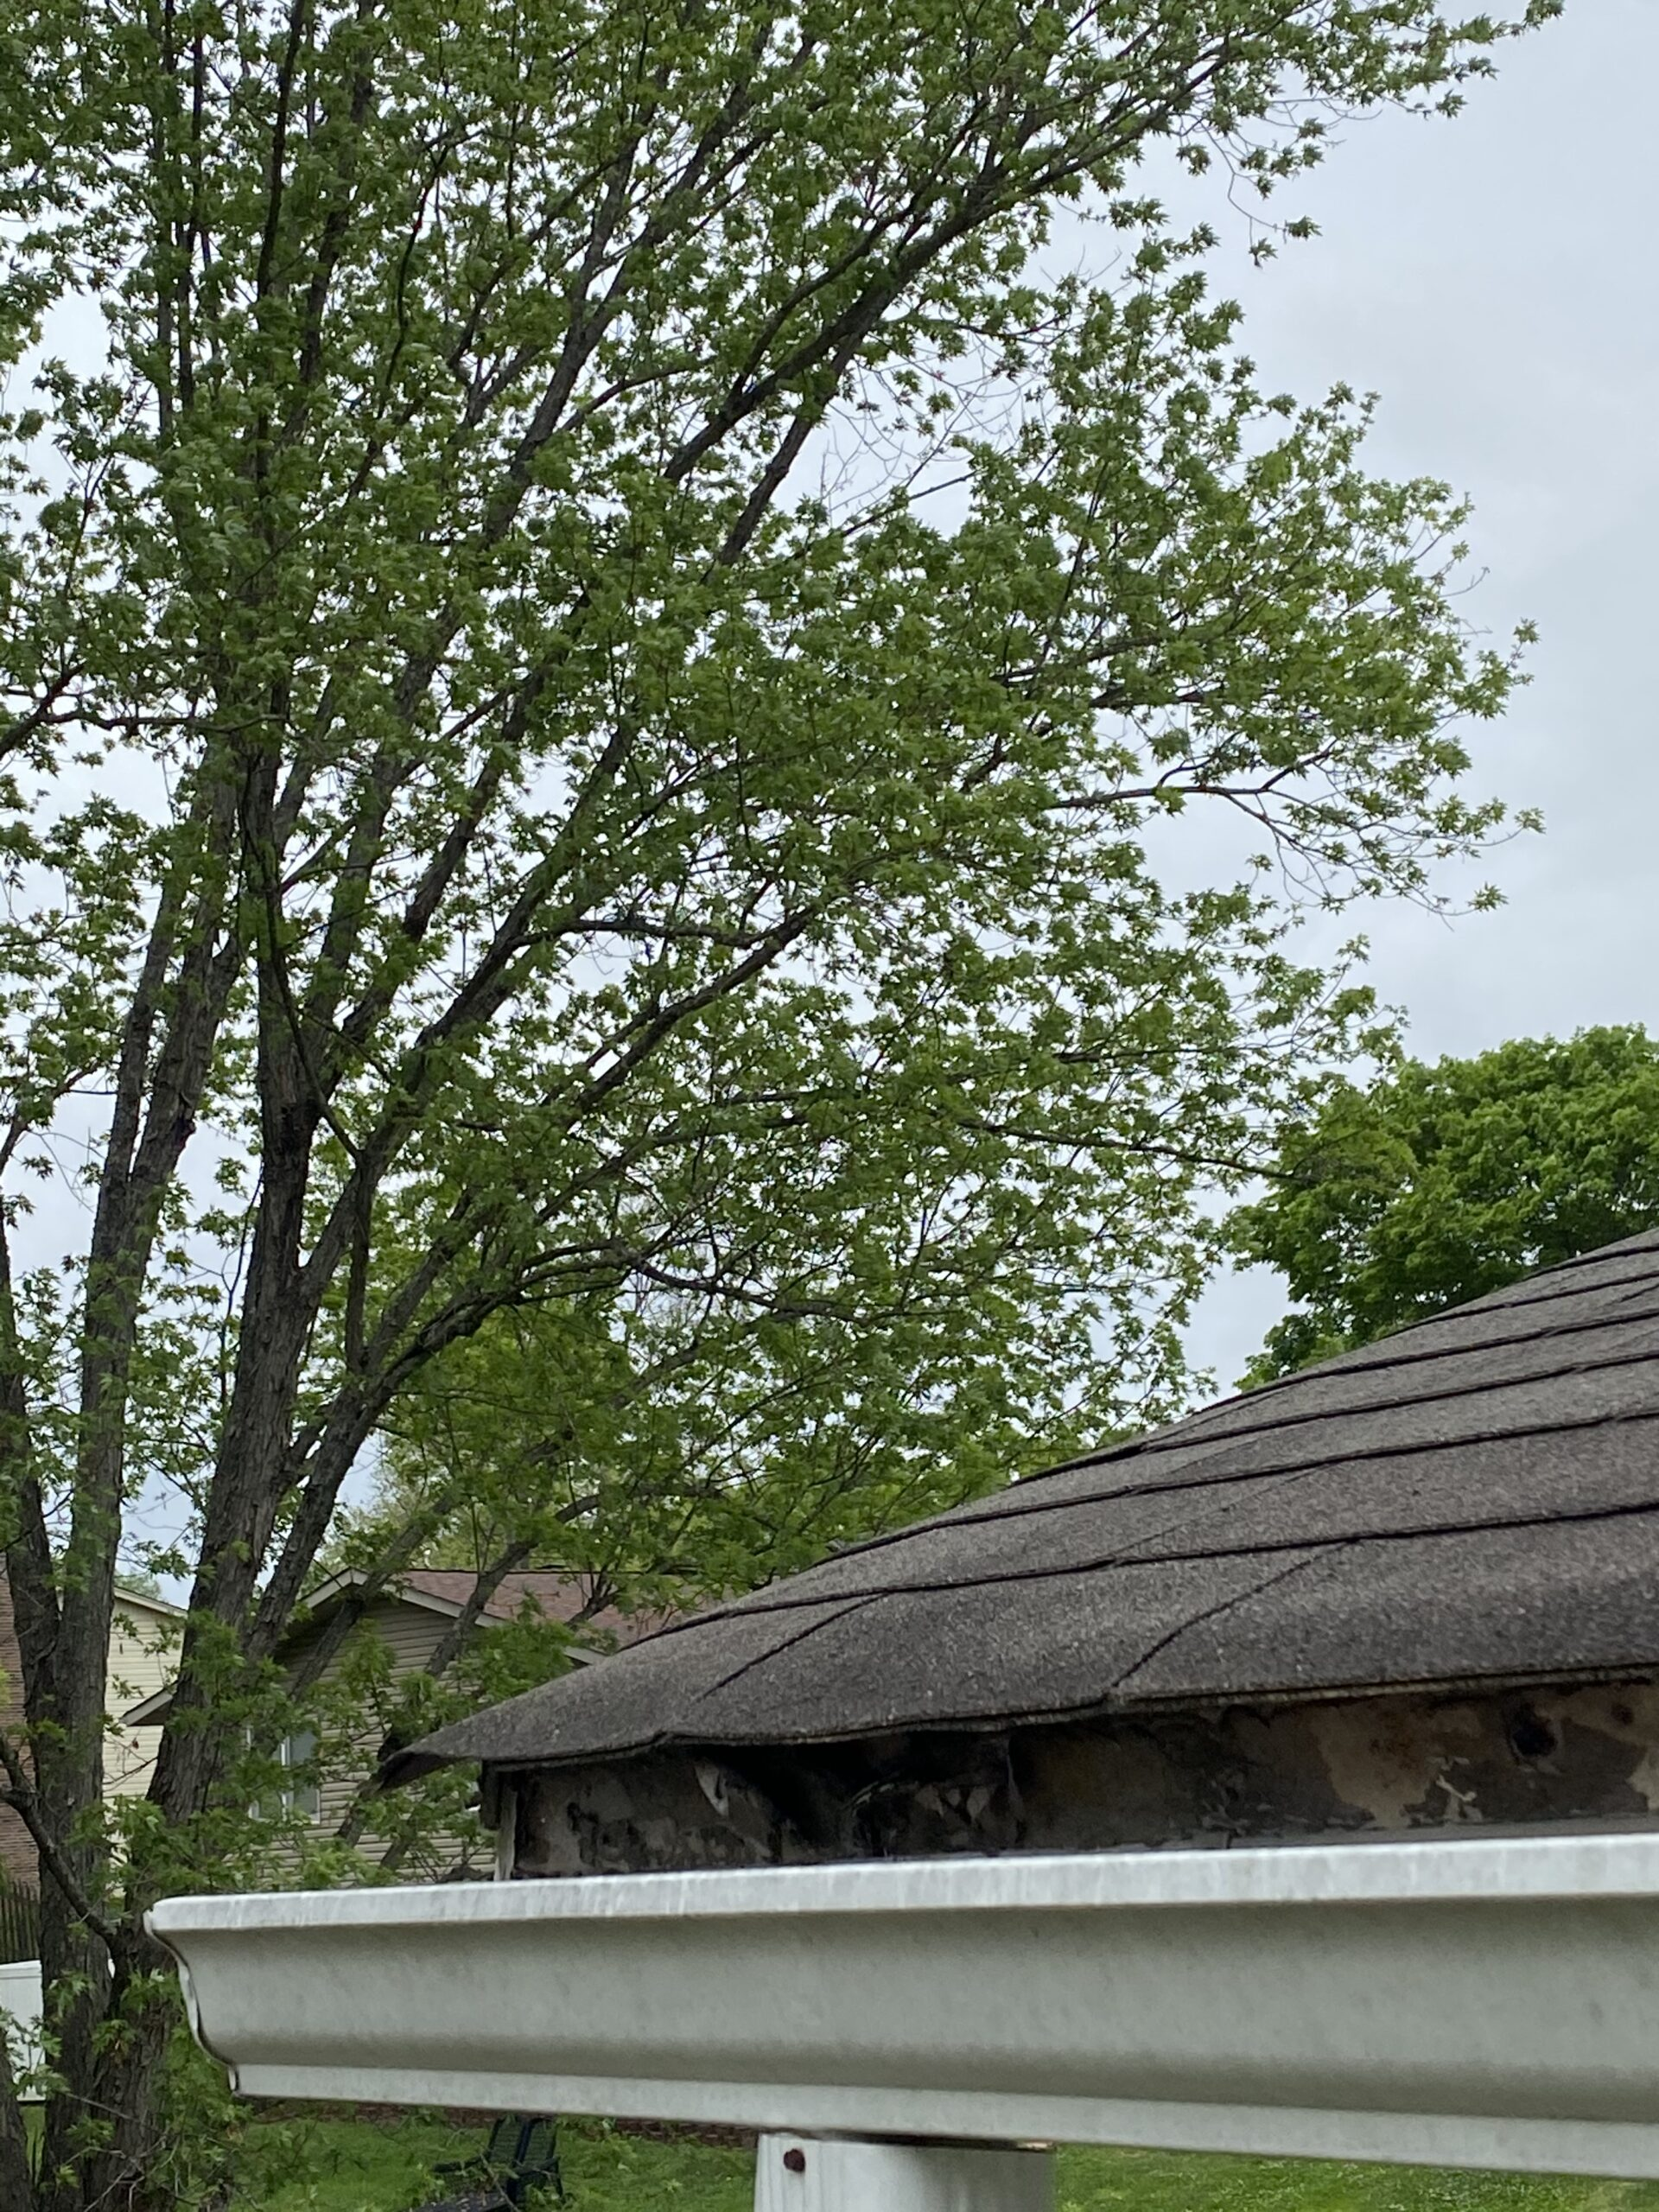 This is a picture of an old white gutter with rotting fascia boards behind it